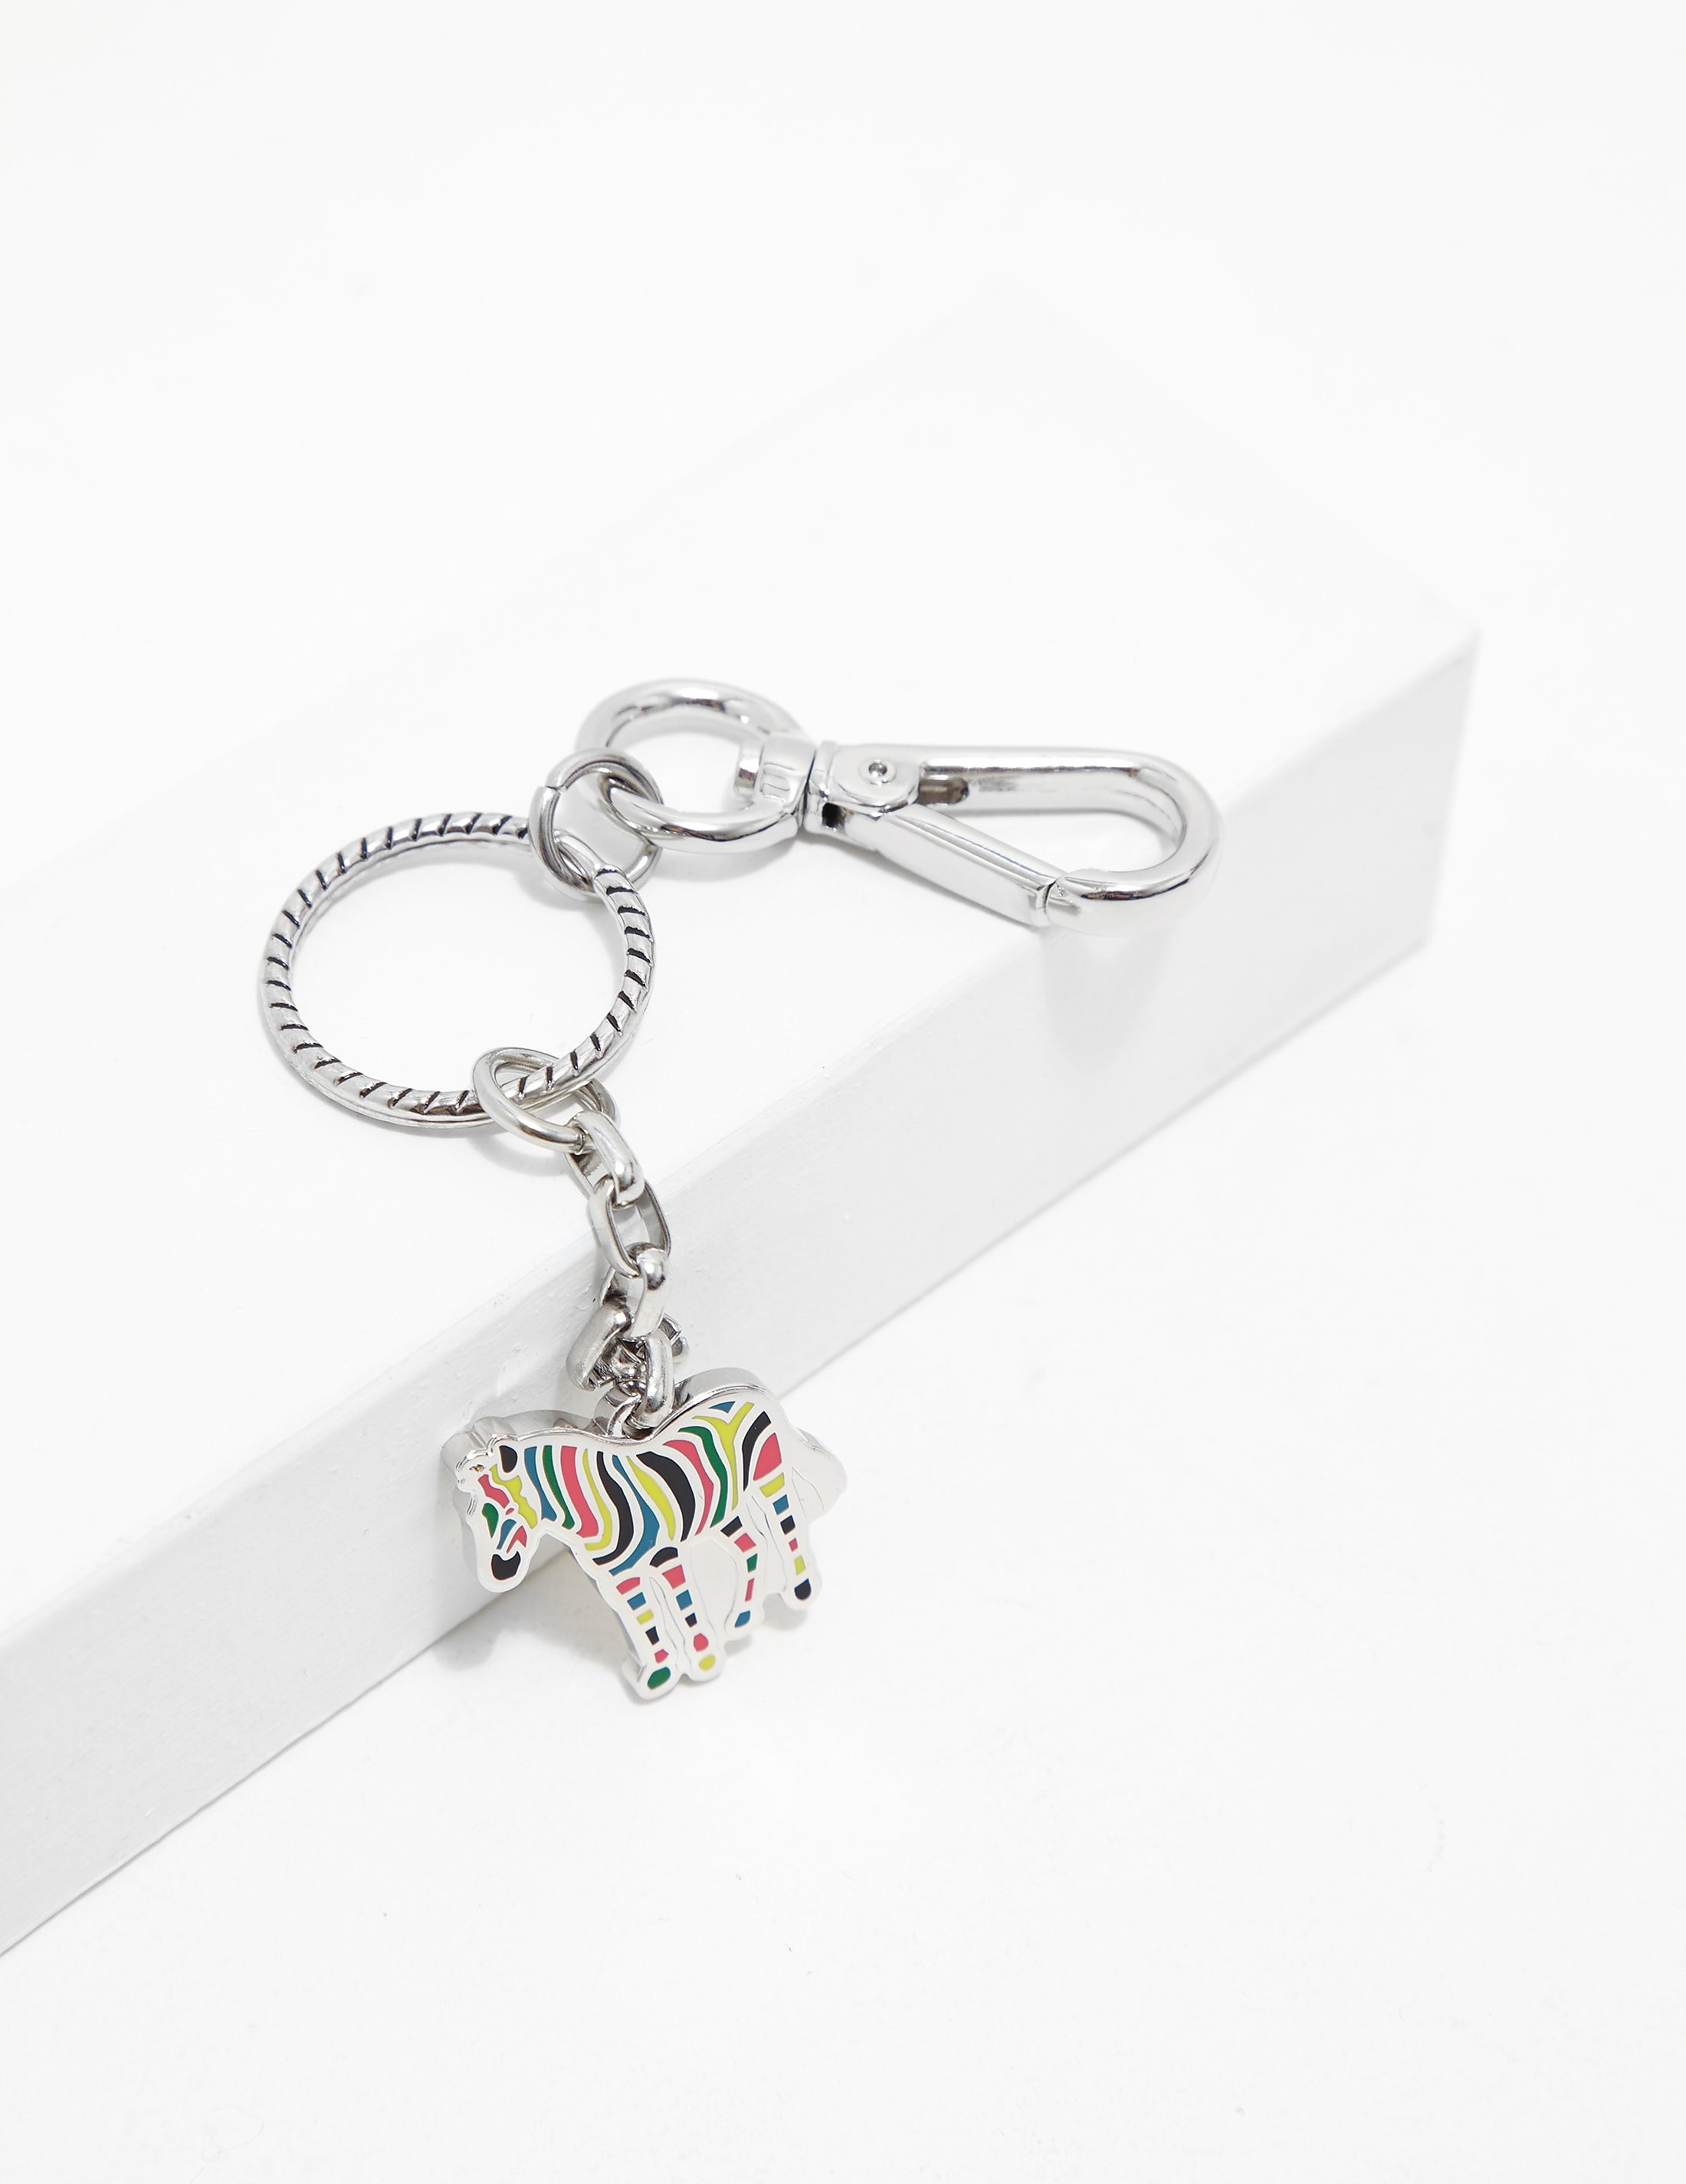 Paul Smith Zebra Keyring